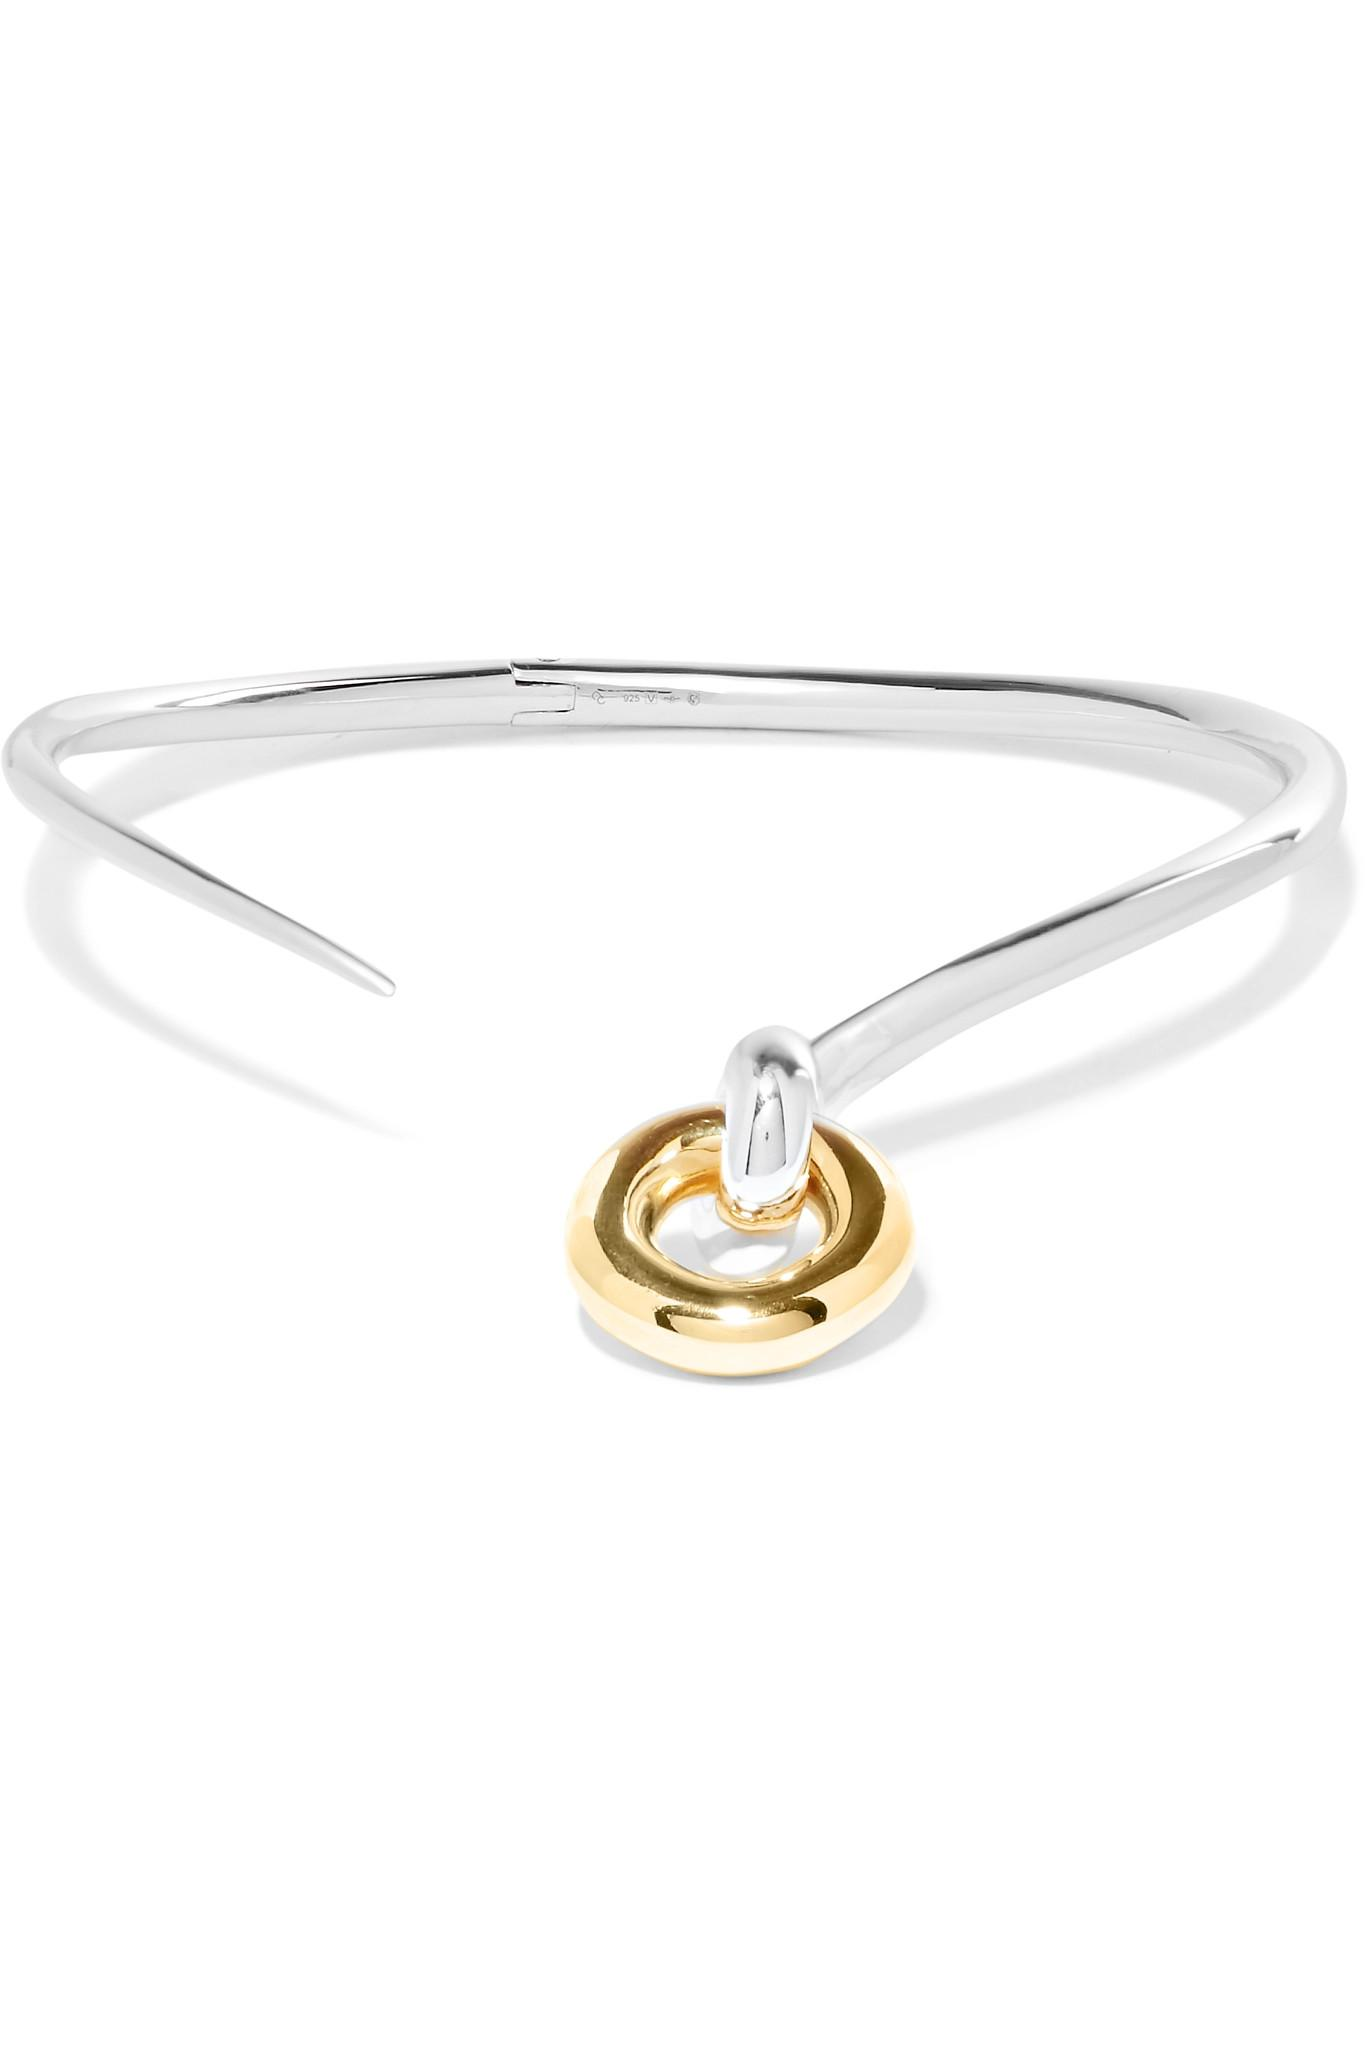 Sale Online Swing Gold Vermeil And Glass Choker - one size Charlotte Chesnais Discount 2018 New Geniue Stockist qIPr5vFl2